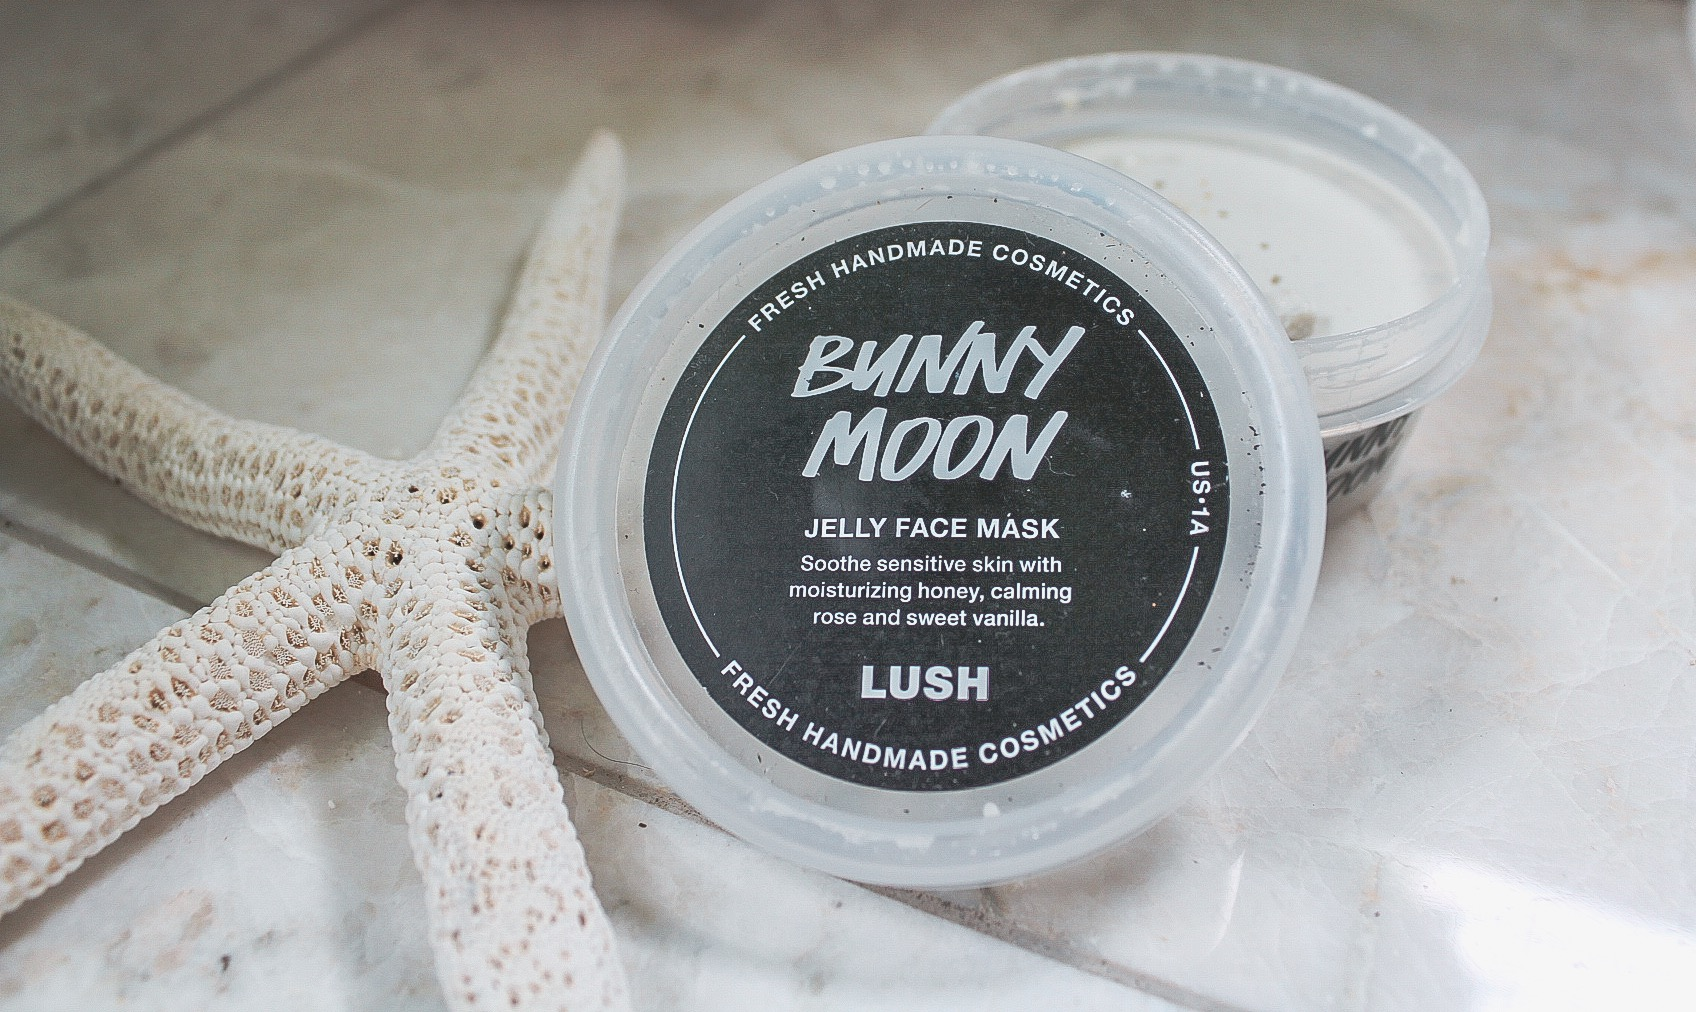 Photo description: A pot of Lush's cream colored Bunny Moon jelly face mask is sitting on a marble counter open with the top leaning on it. There is a white starfish next to it.